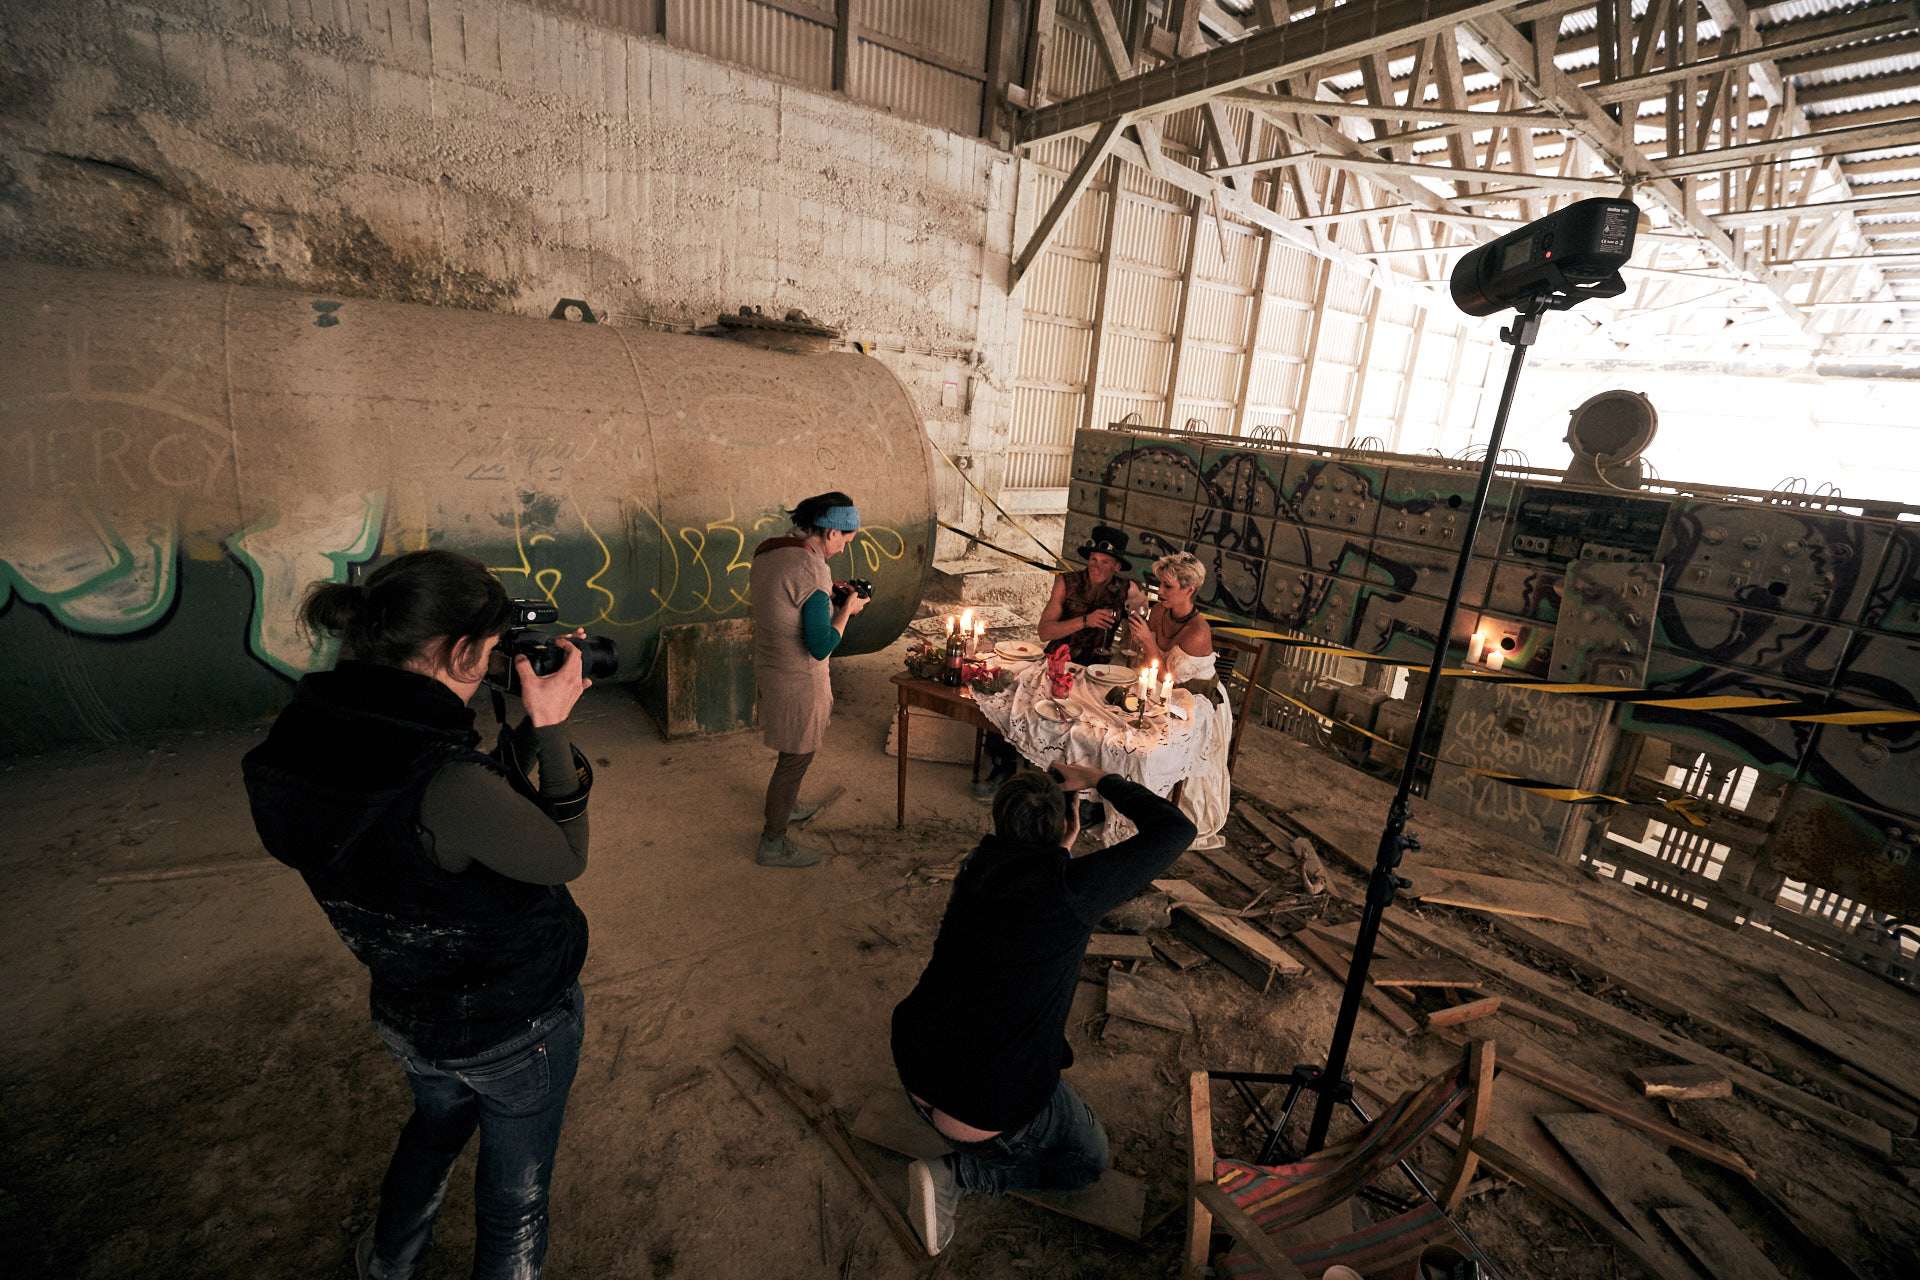 Lost Place Shooting Day - Natascha Zenig - Seelenschnitt